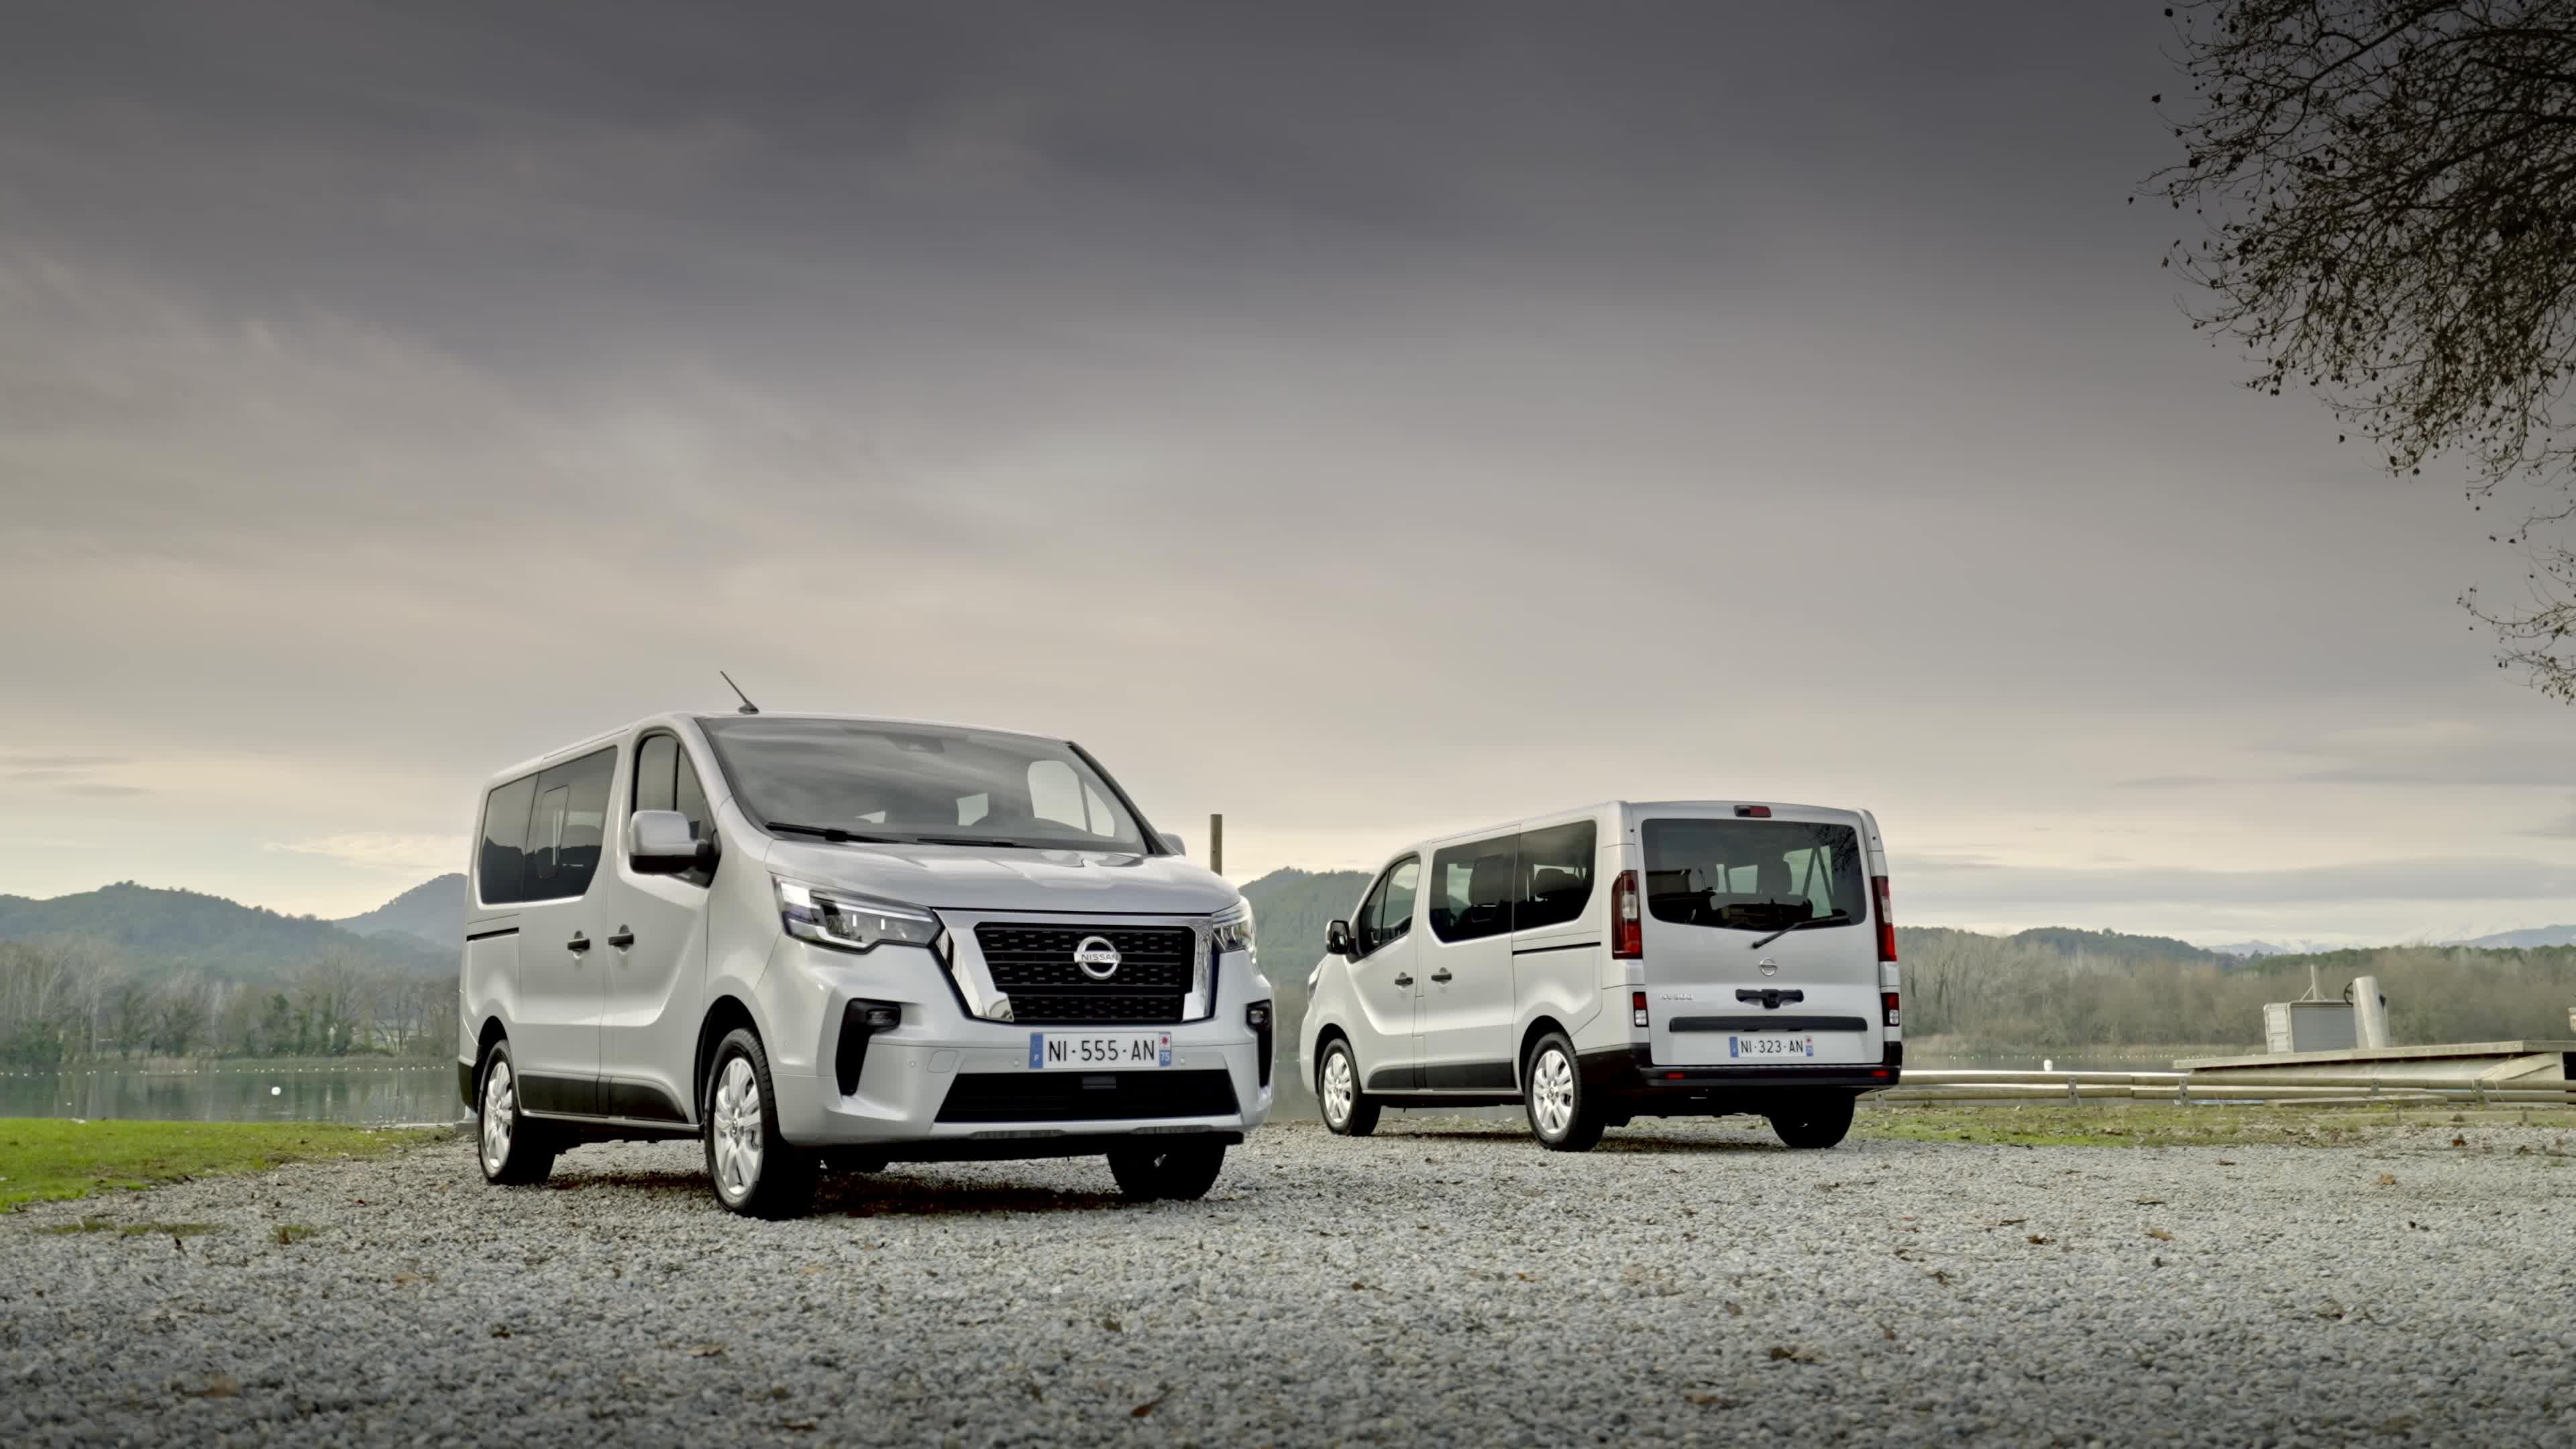 Nissan upgrades the NV300 Combi with sharper look and feel, enhanced powertrain and new safety technologies - Image 4